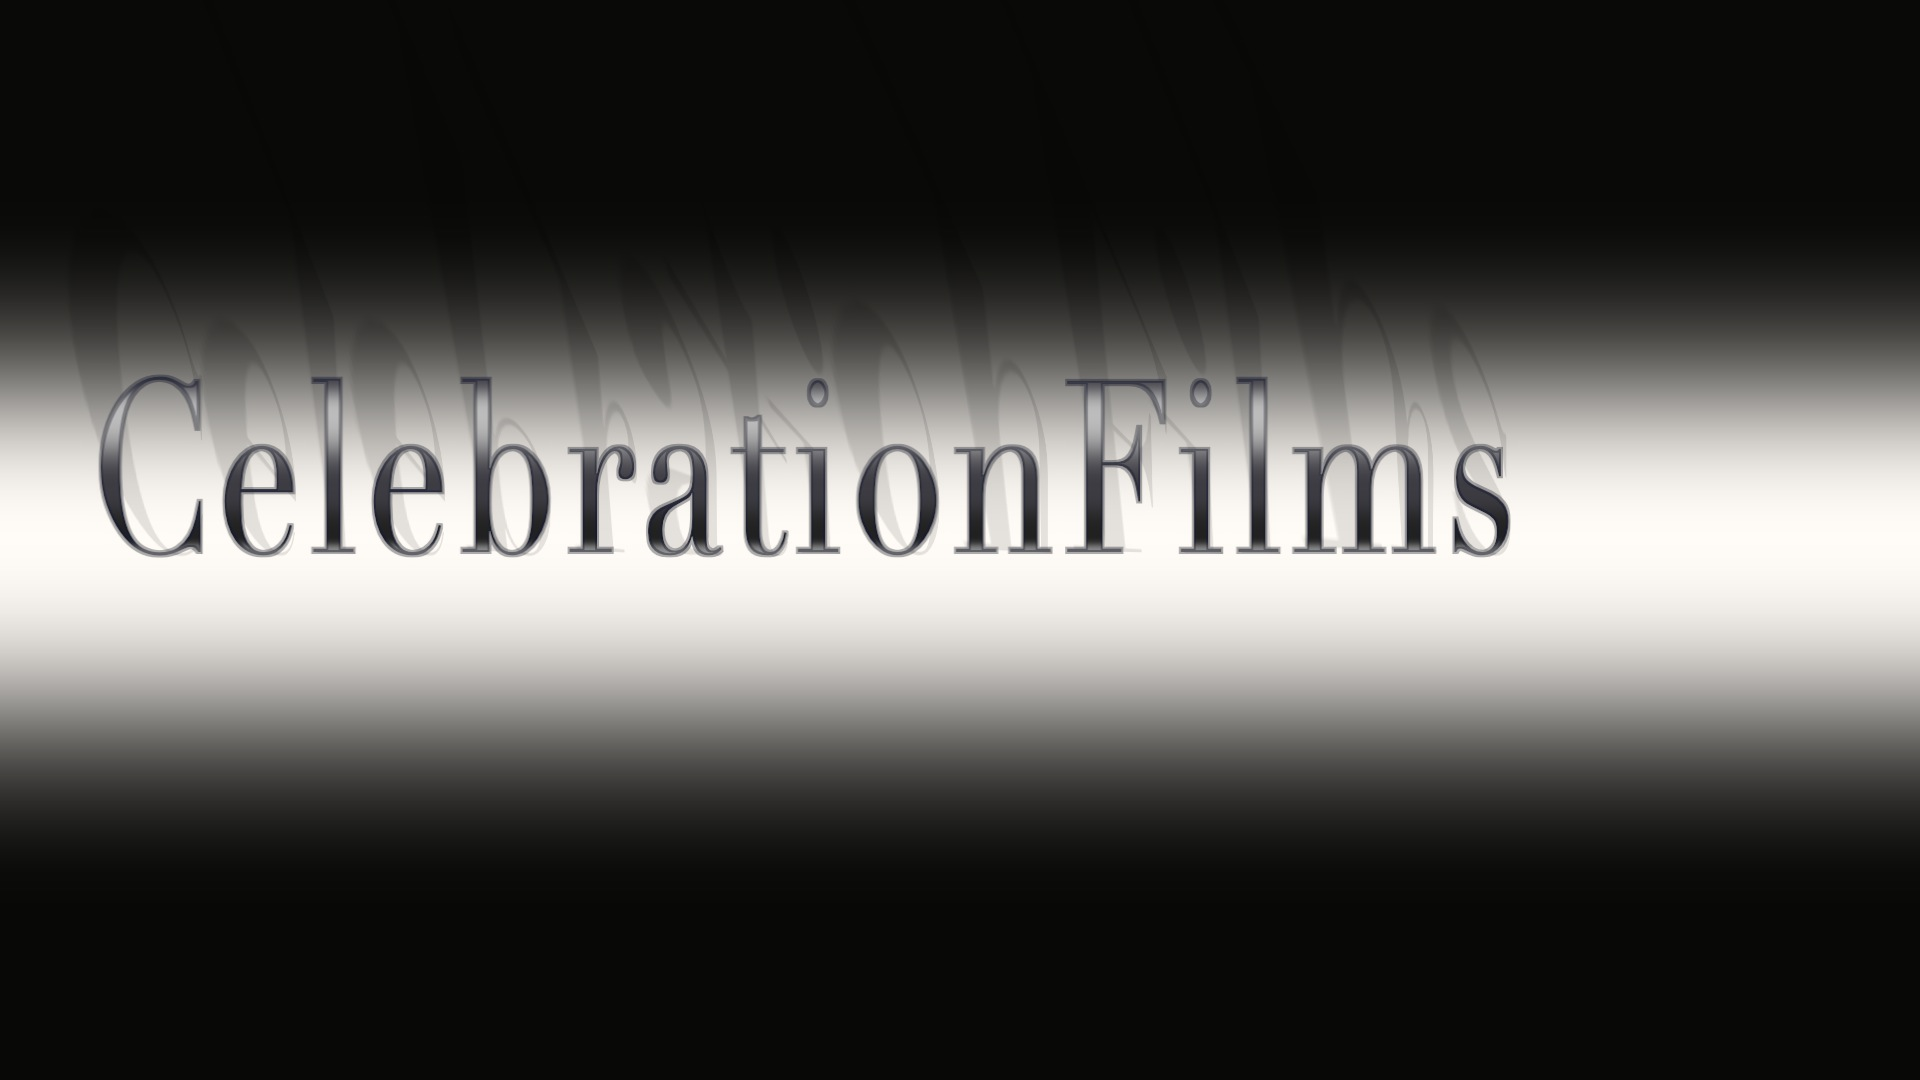 CelebrationFilms..didot.dropshadow.jpg